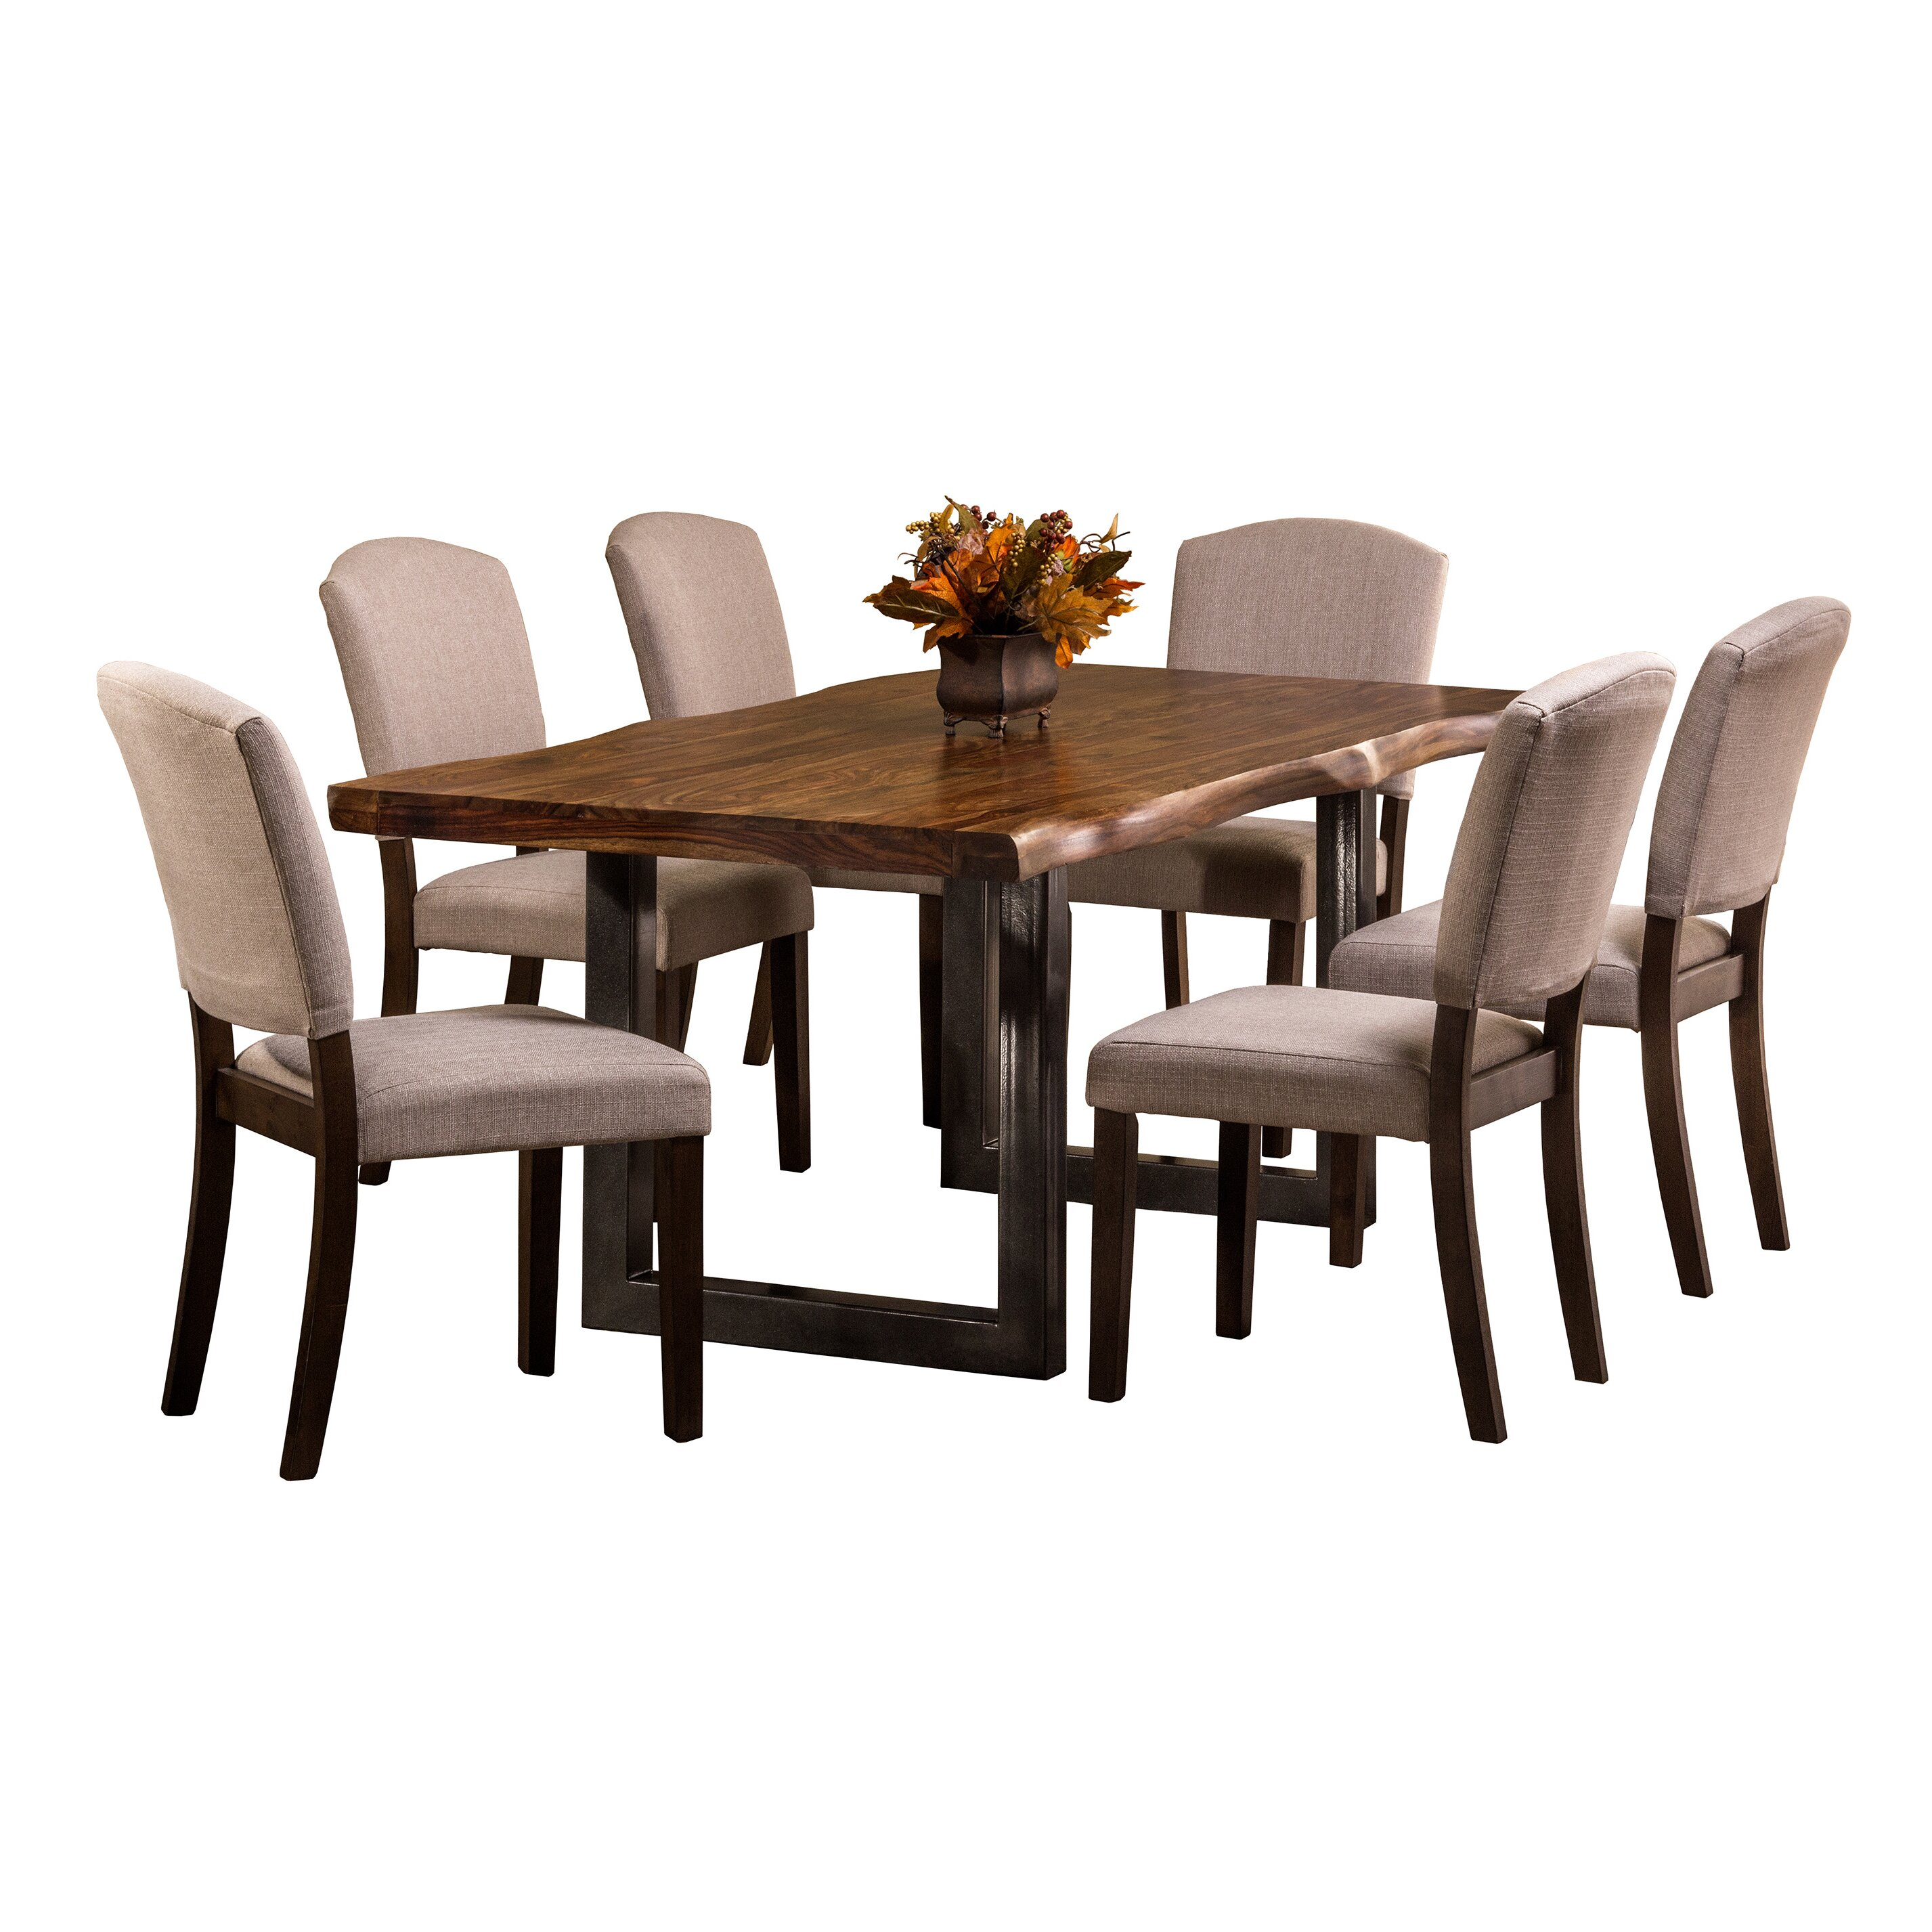 Brayden studio linde 7 piece dining set wayfair for 7 piece dining set